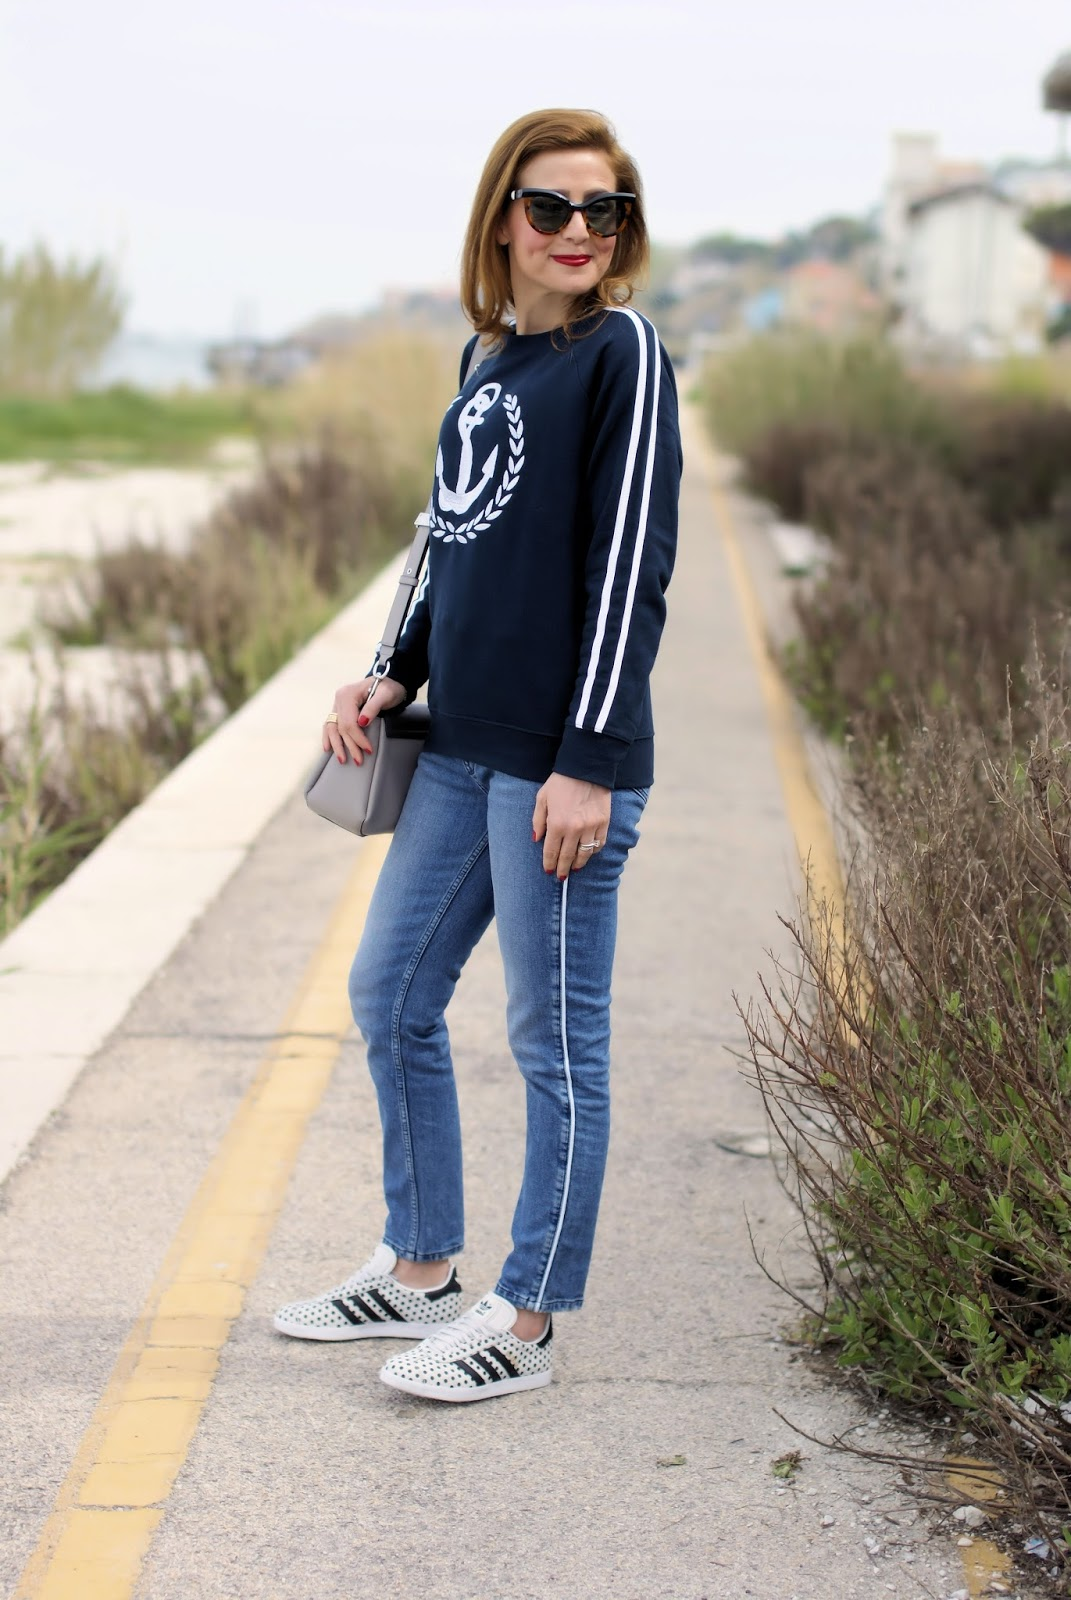 navy inspired sweatshirt and polka dot adidas Gazelle sneakers on Fashion and Cookies fashion blog, fashion blogger style